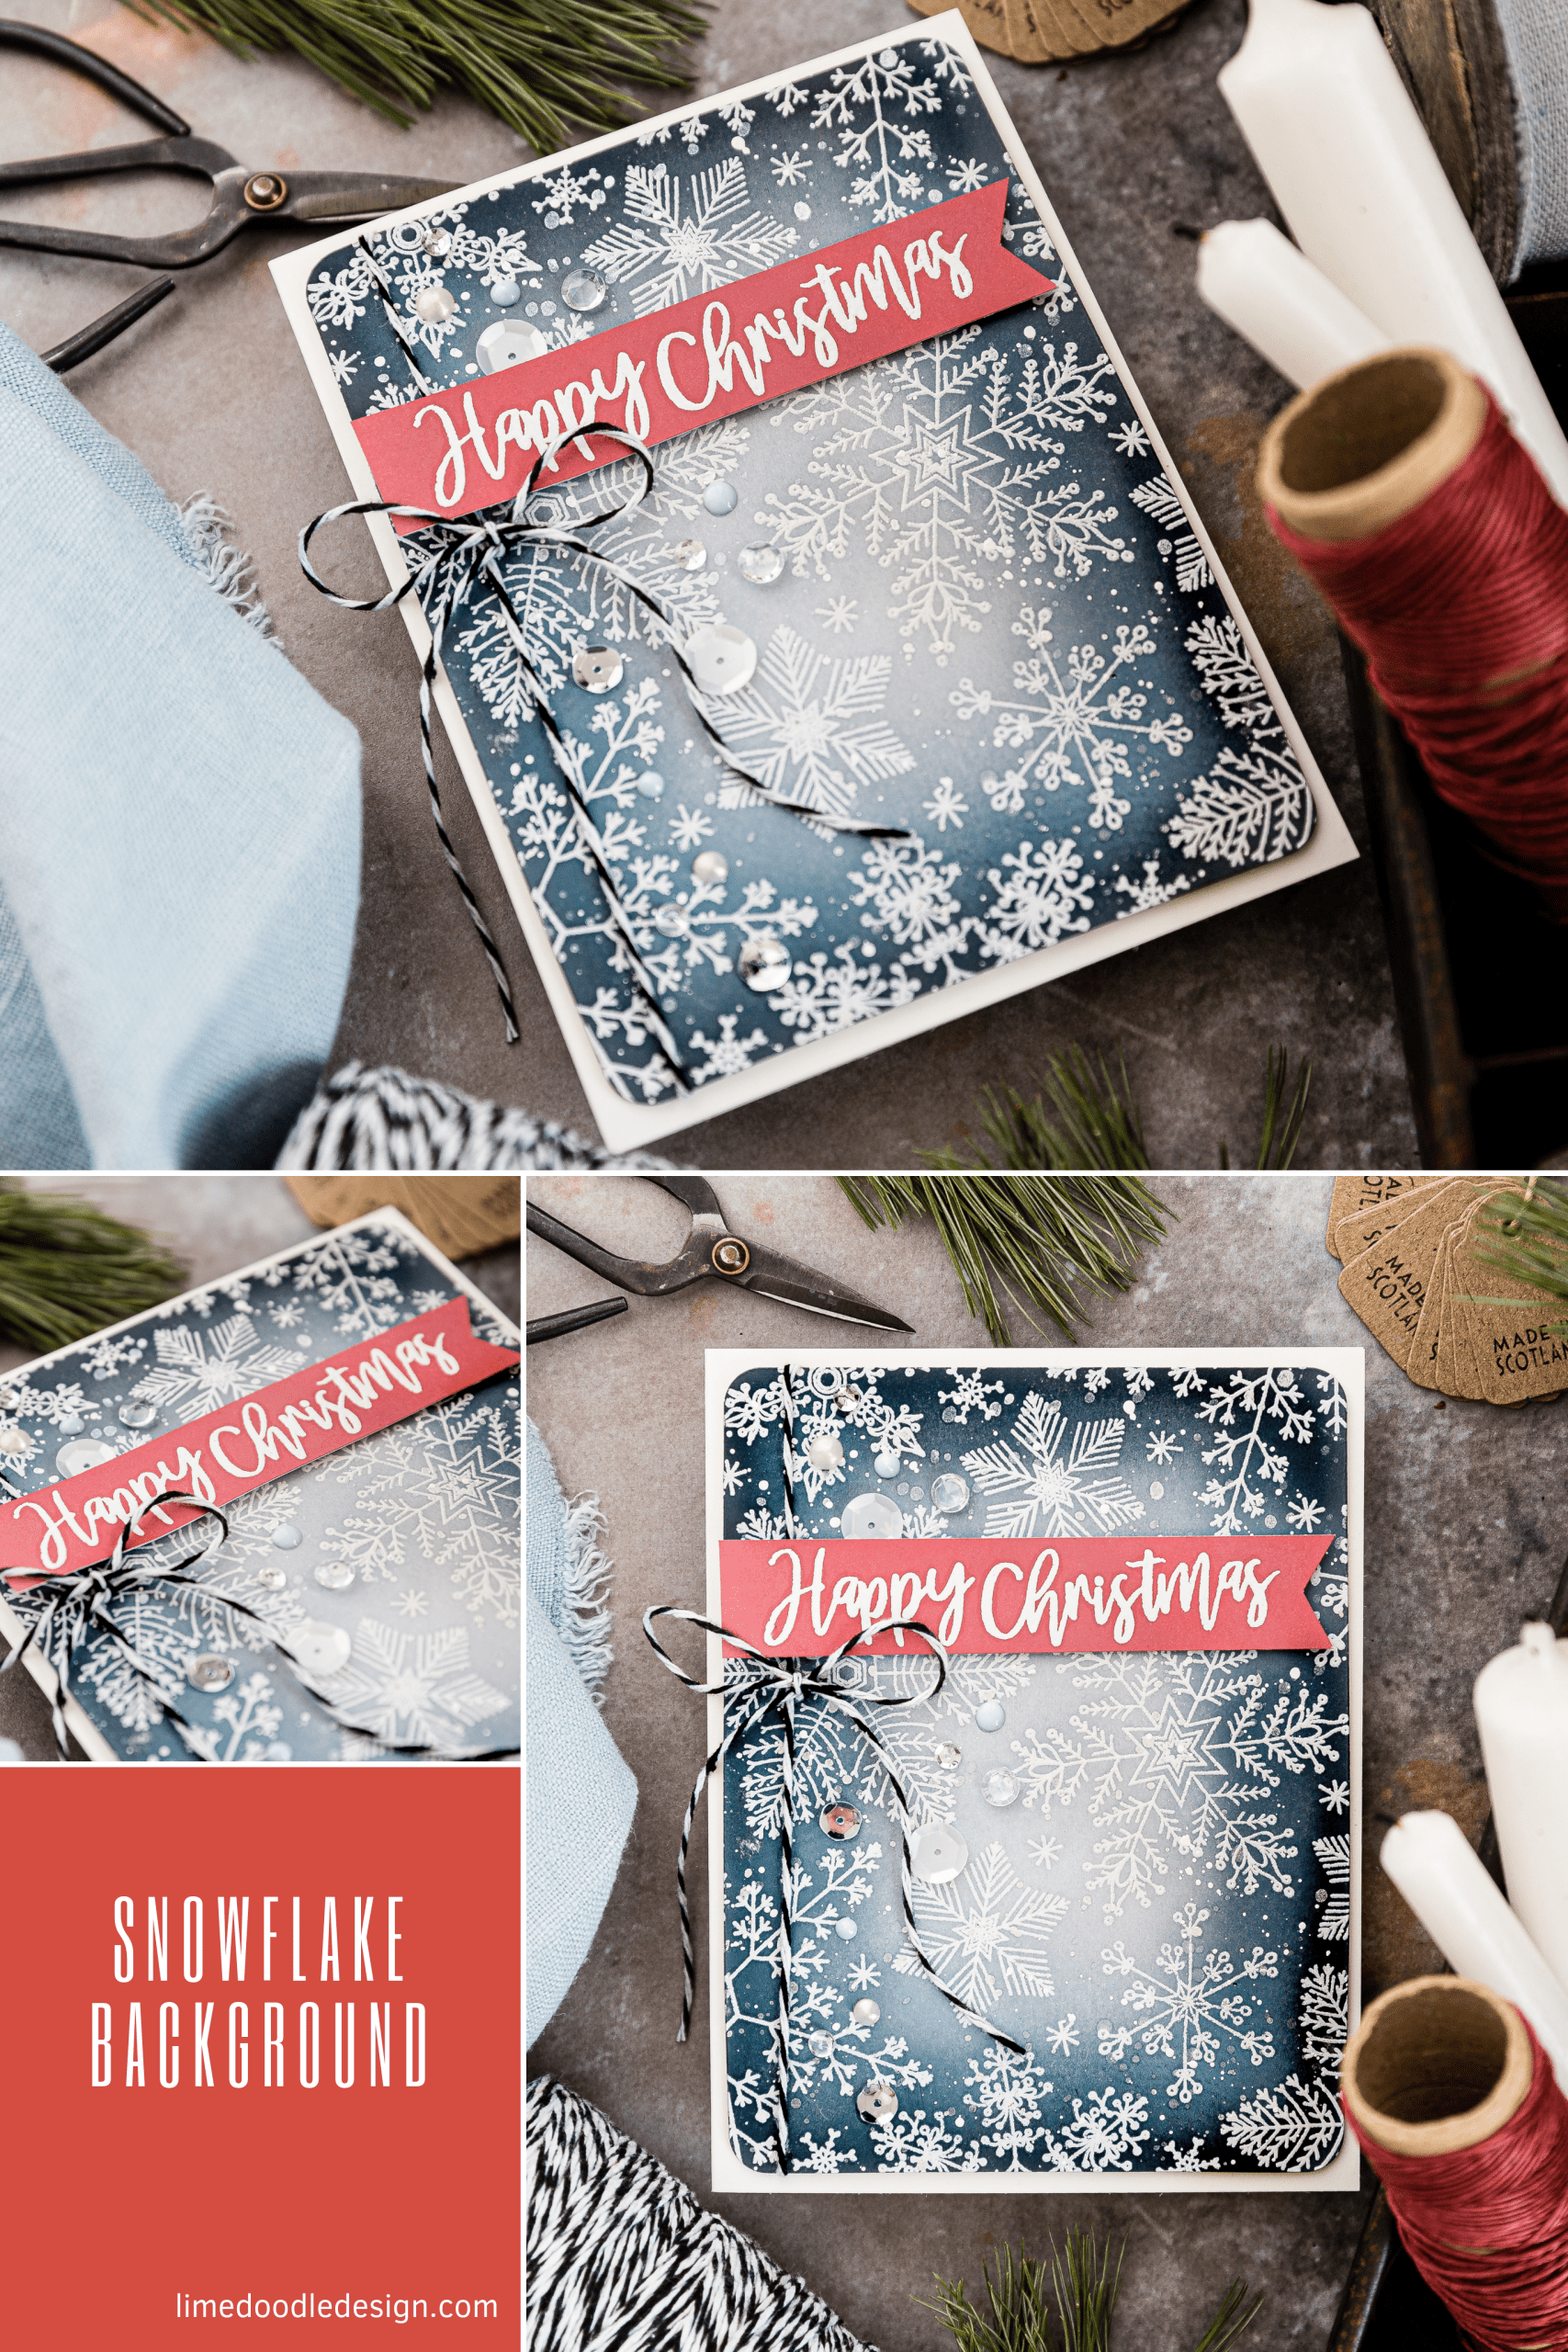 Simple snowflake background Christmas handmade card by Debby Hughes using supplies from Hero Arts. Find out more here:https://limedoodledesign.com/2019/08/simple-snowflake-background-hero-arts-winter-release-blog-hop/